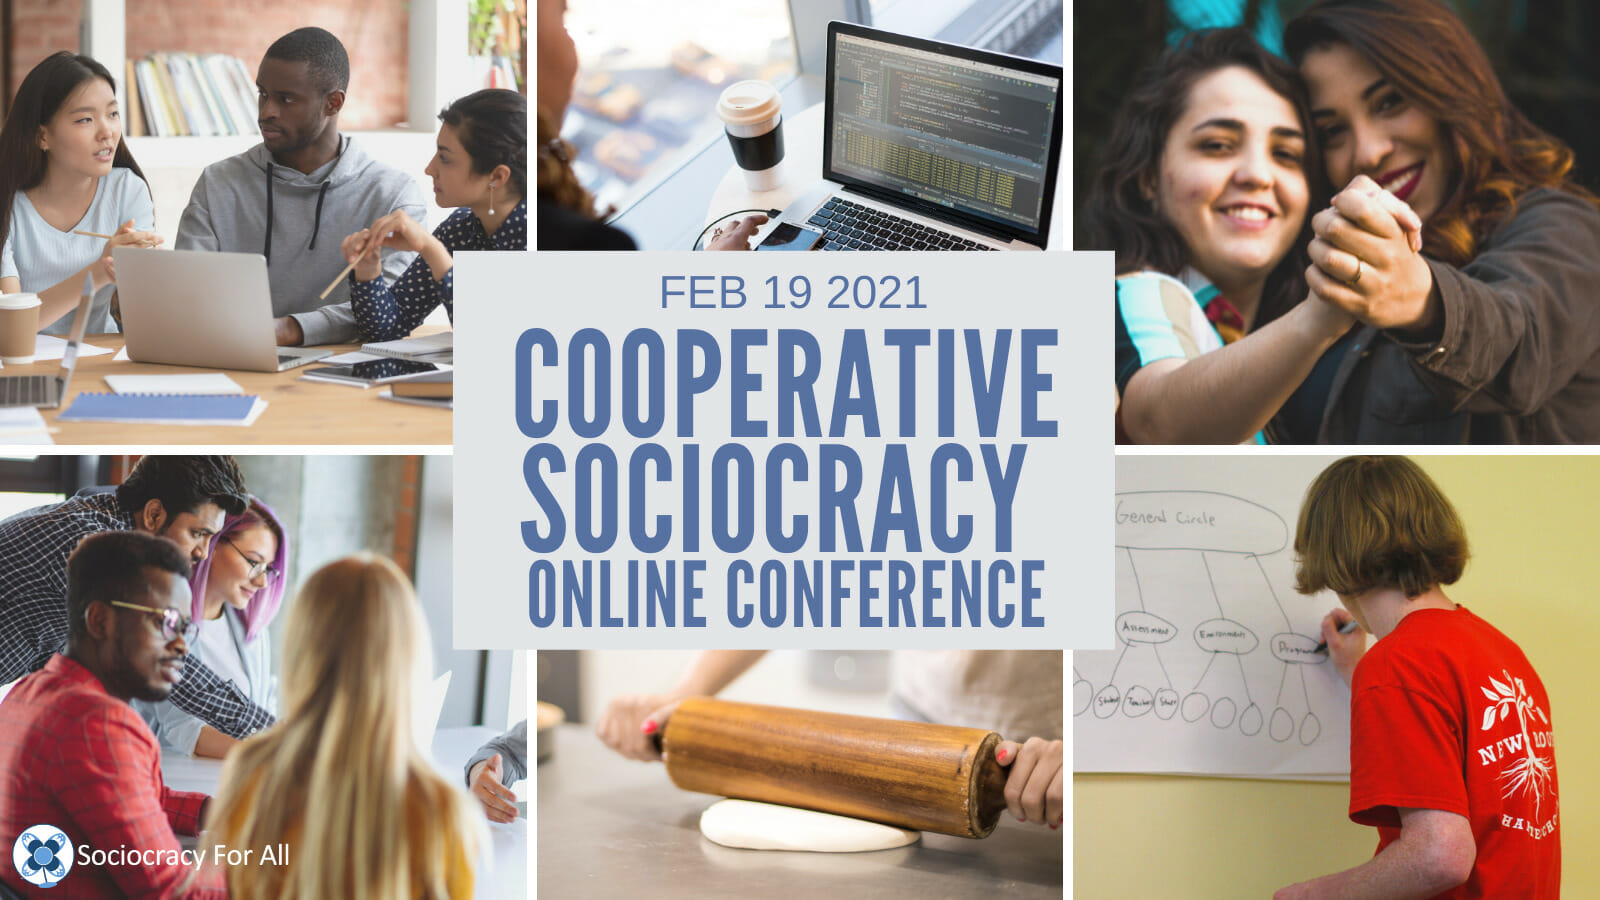 Cooperatives and sociocracy - and conference on Feb 18